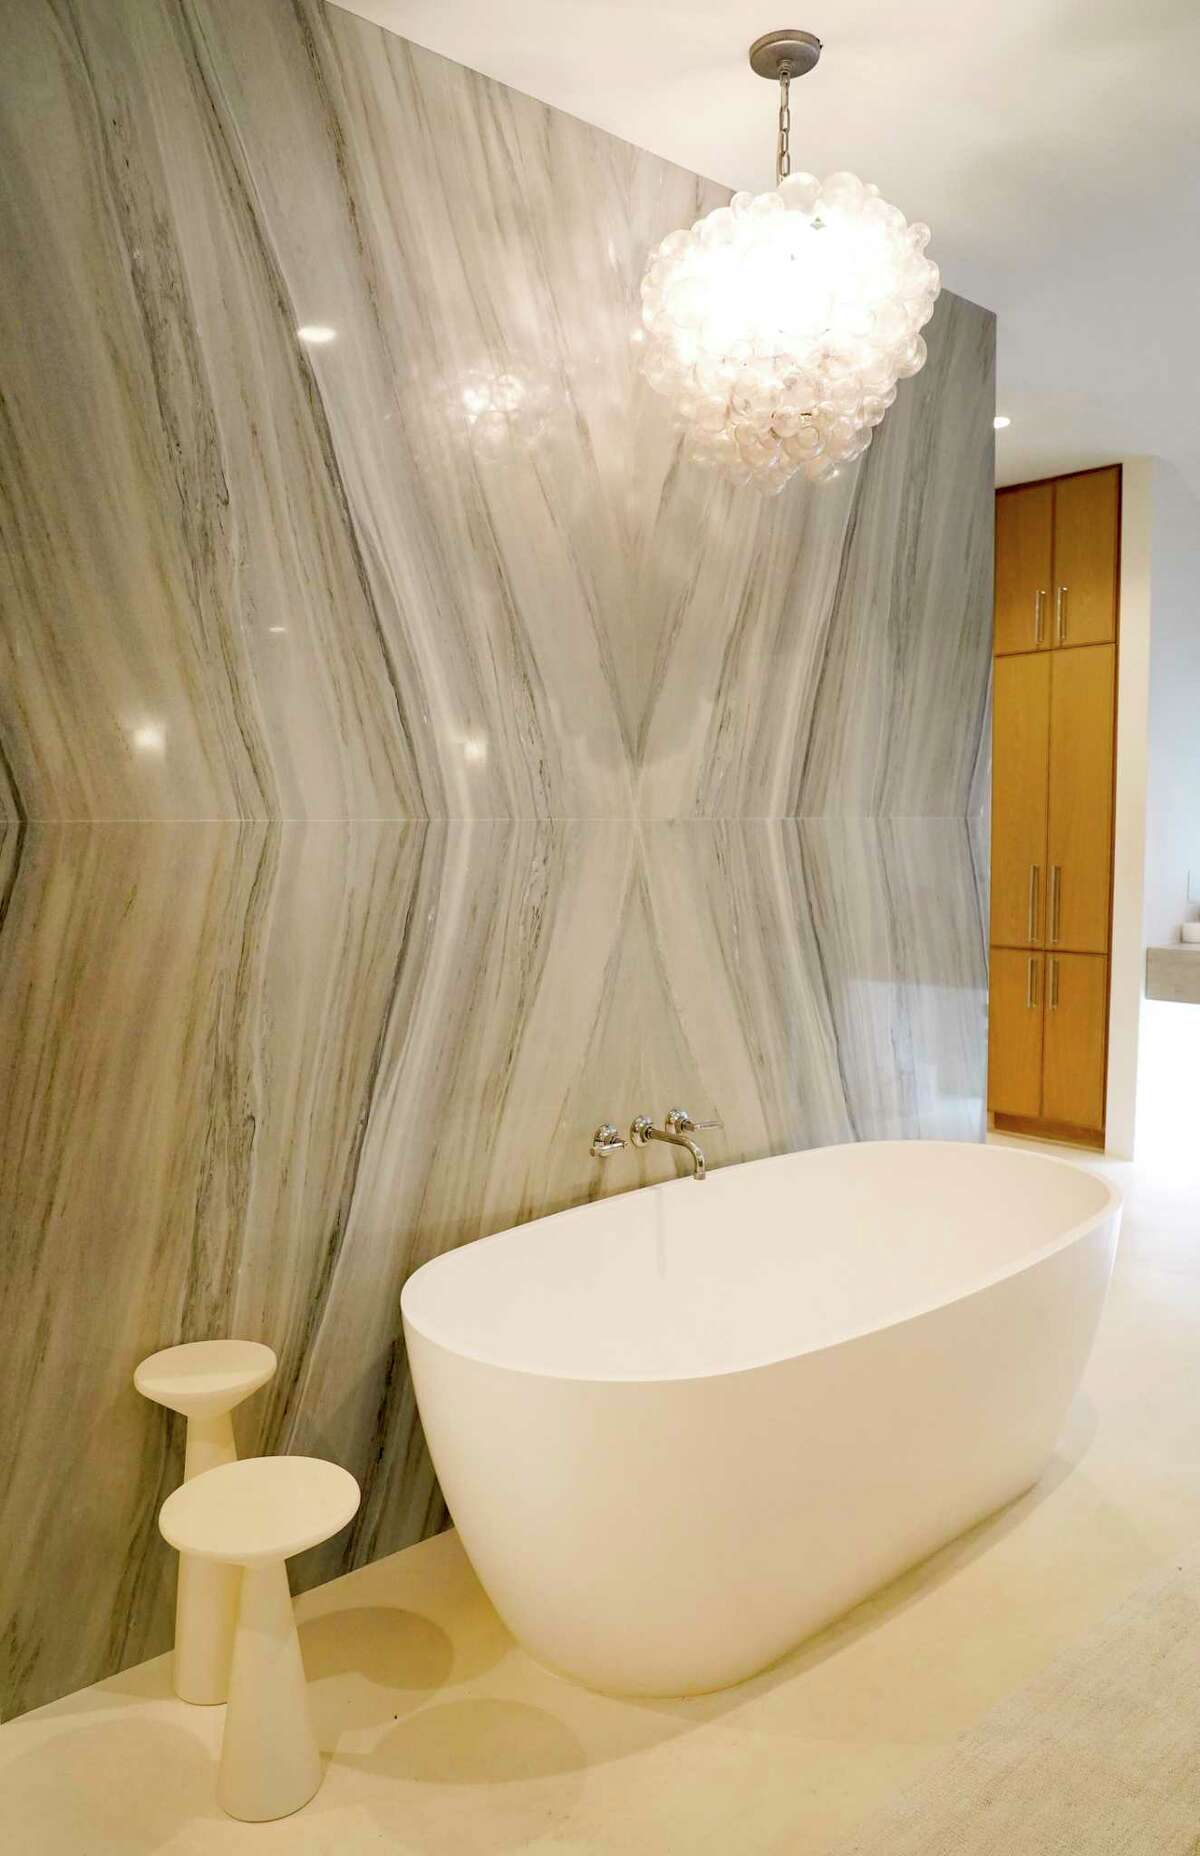 2. Statement wall: Bookmatched slabs of beautiful marble form a statement wall in this bathroom. On one side, it's a great backdrop for the freestanding bathtub and chandelier, on the other, it's a long wall for a huge shower. Wimmel Design and Construction did the massive remodel on this home that flooded in Hurricane Harvey.